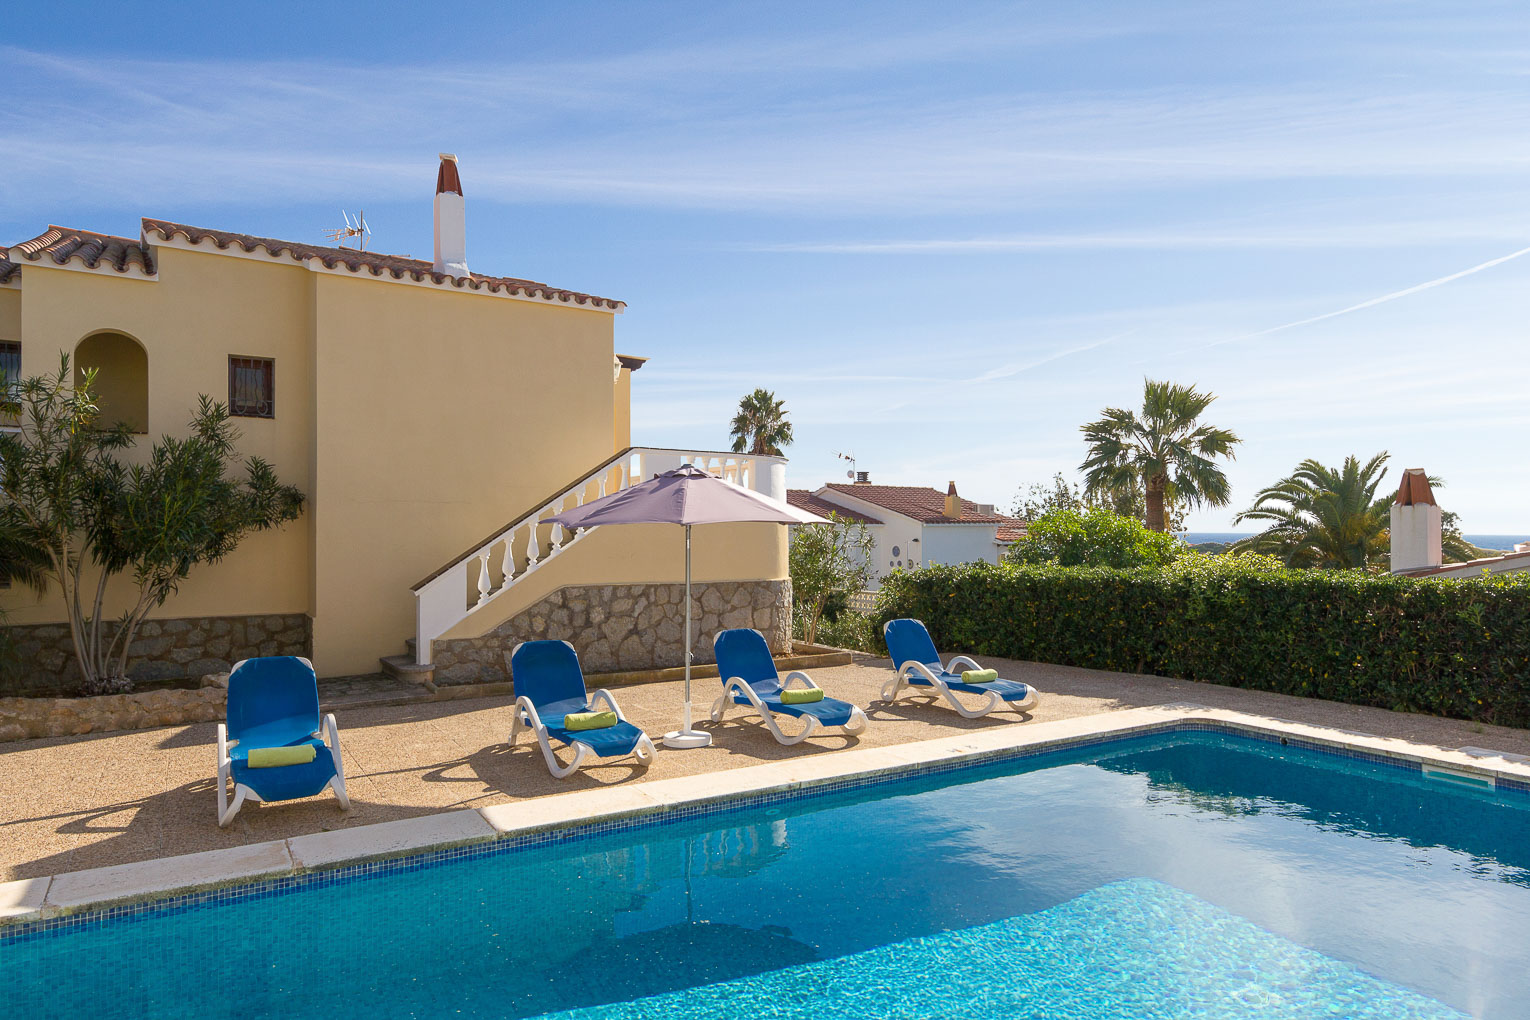 Apartments Maritim Son Bou Apartment in Son Bou, Menorca